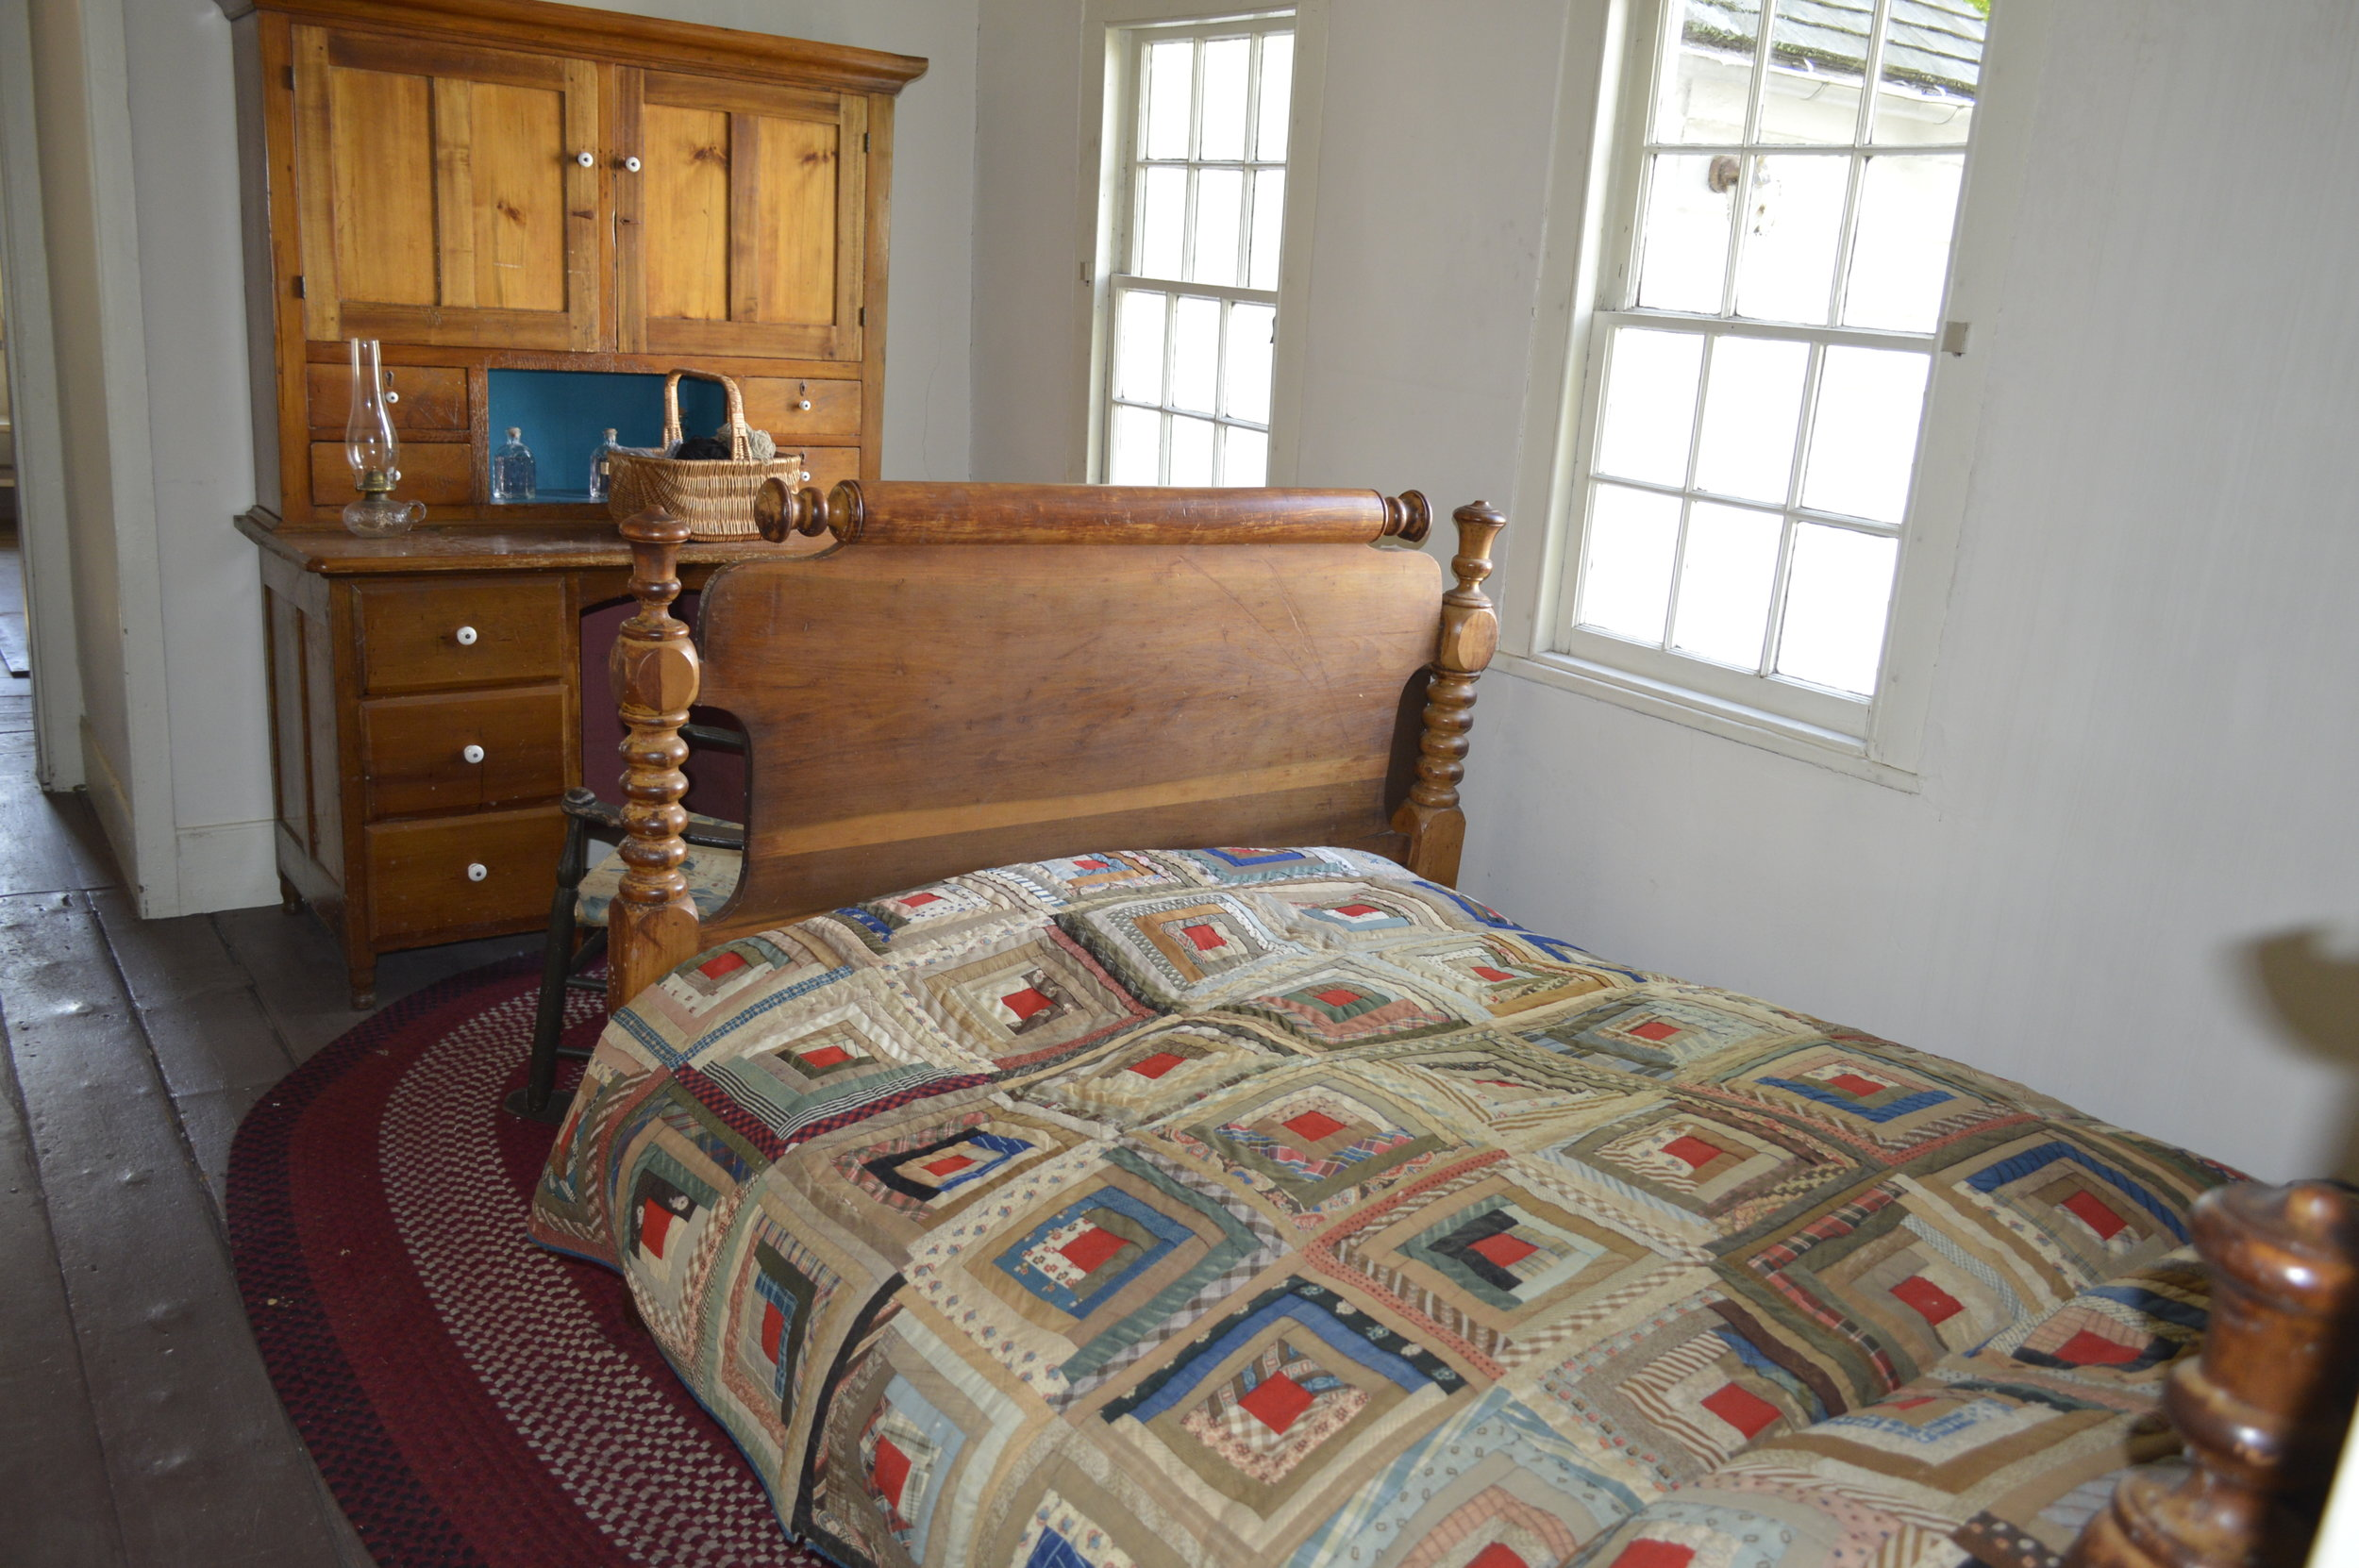 The grandmother's room is on the first floor. The bed foundation is a made of ropes and the quilt is handmade.